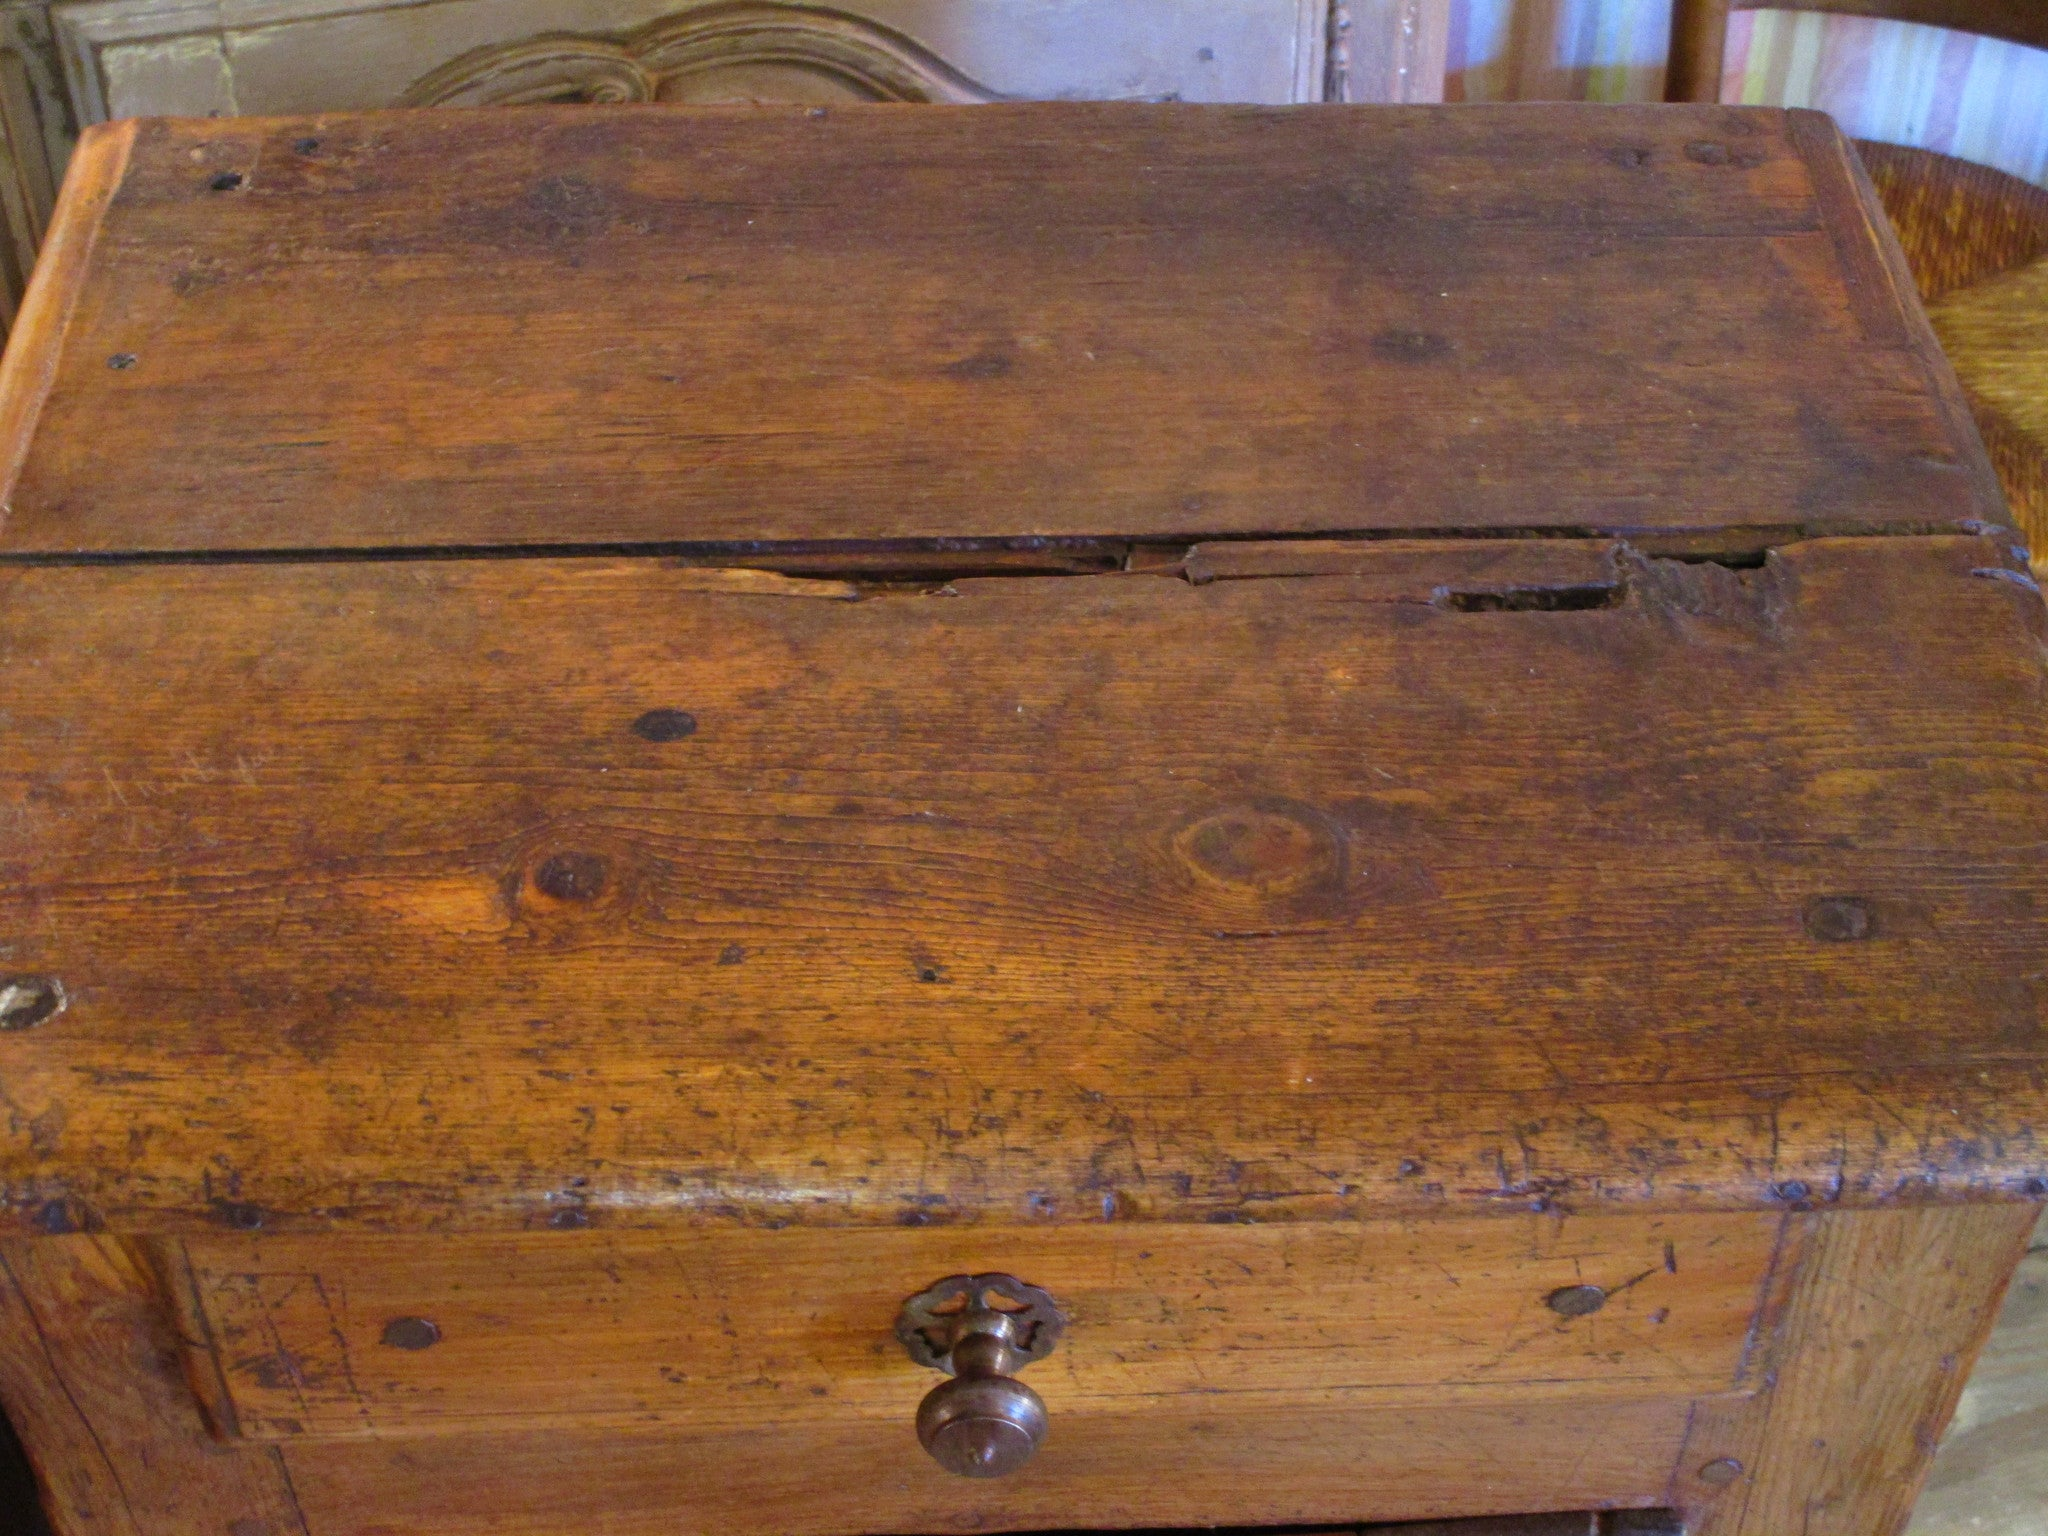 Top - 19th century rustic confituriers side table cabinet